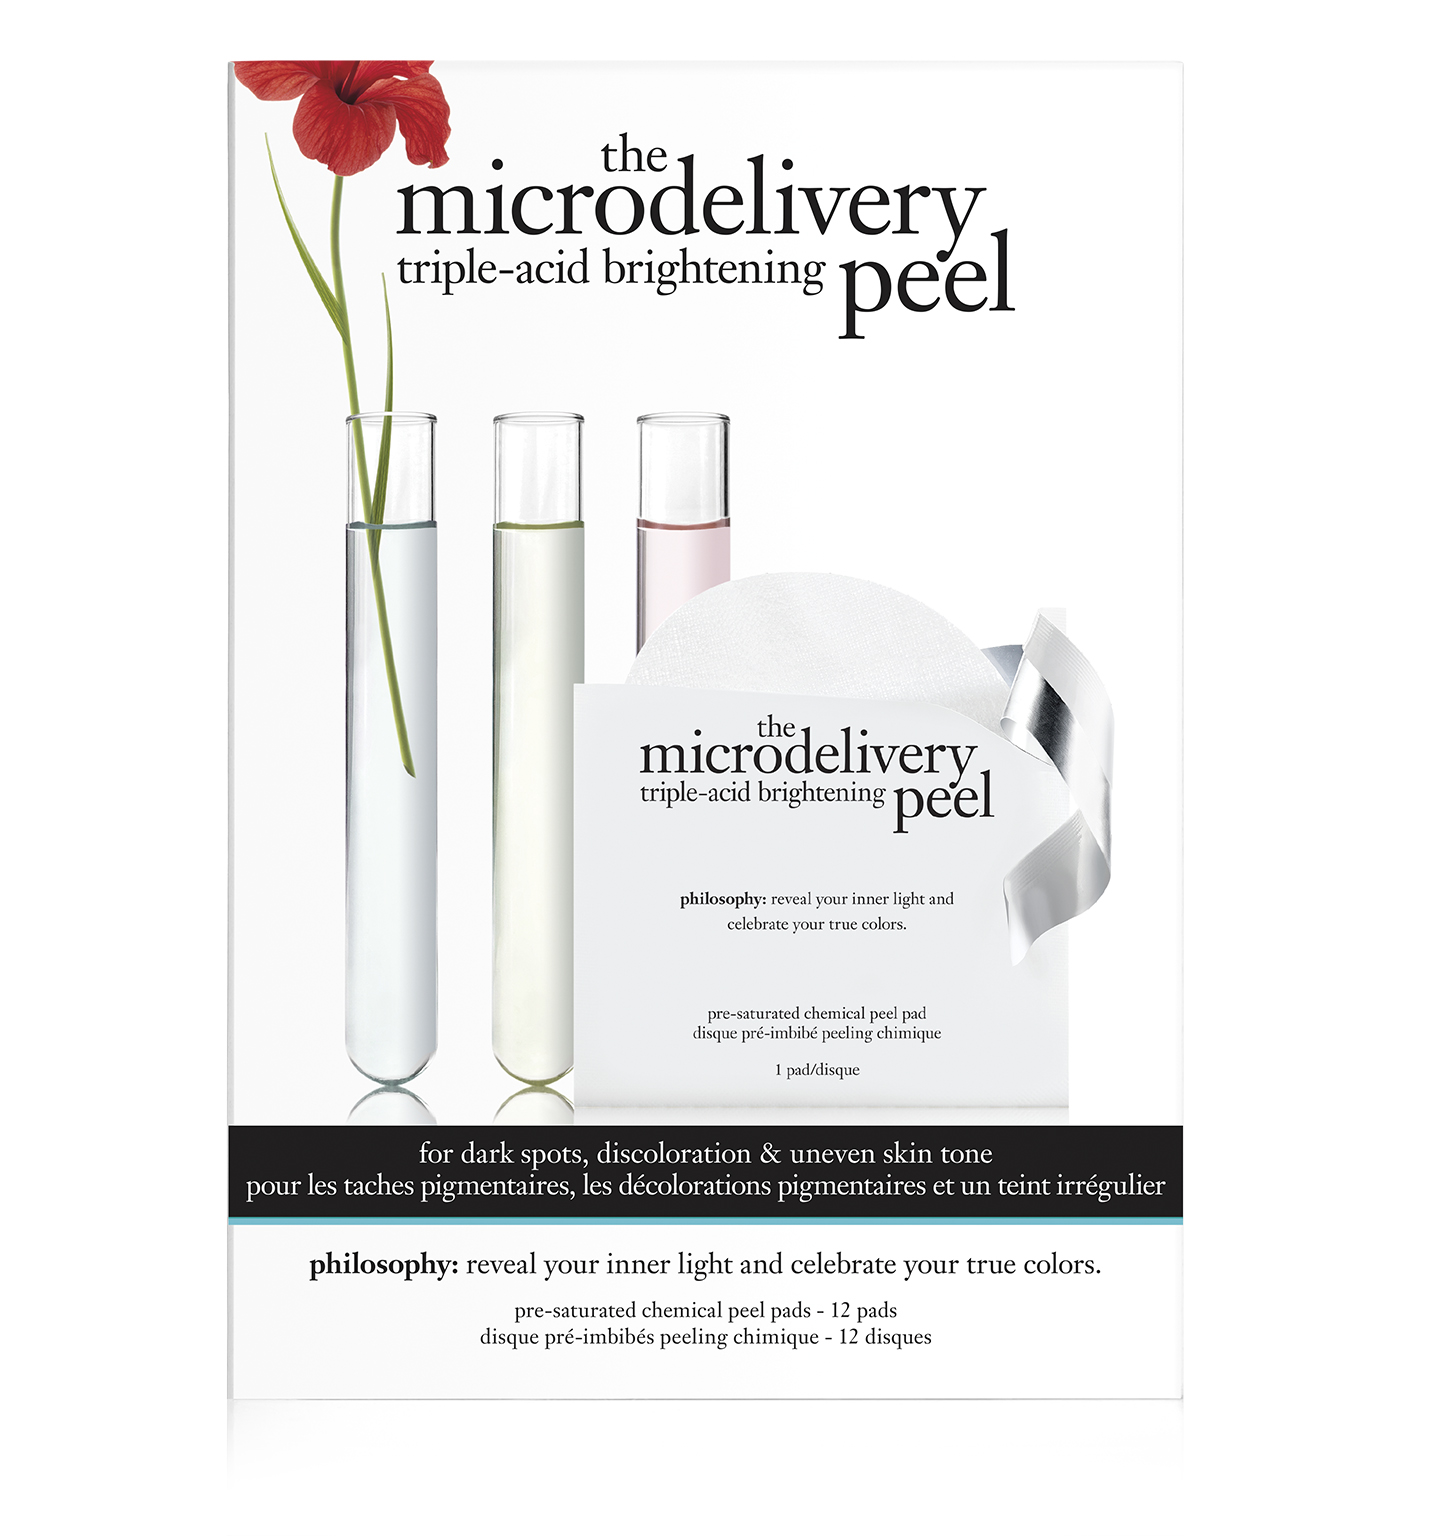 the microdelivery triple-acid brightening peel pads